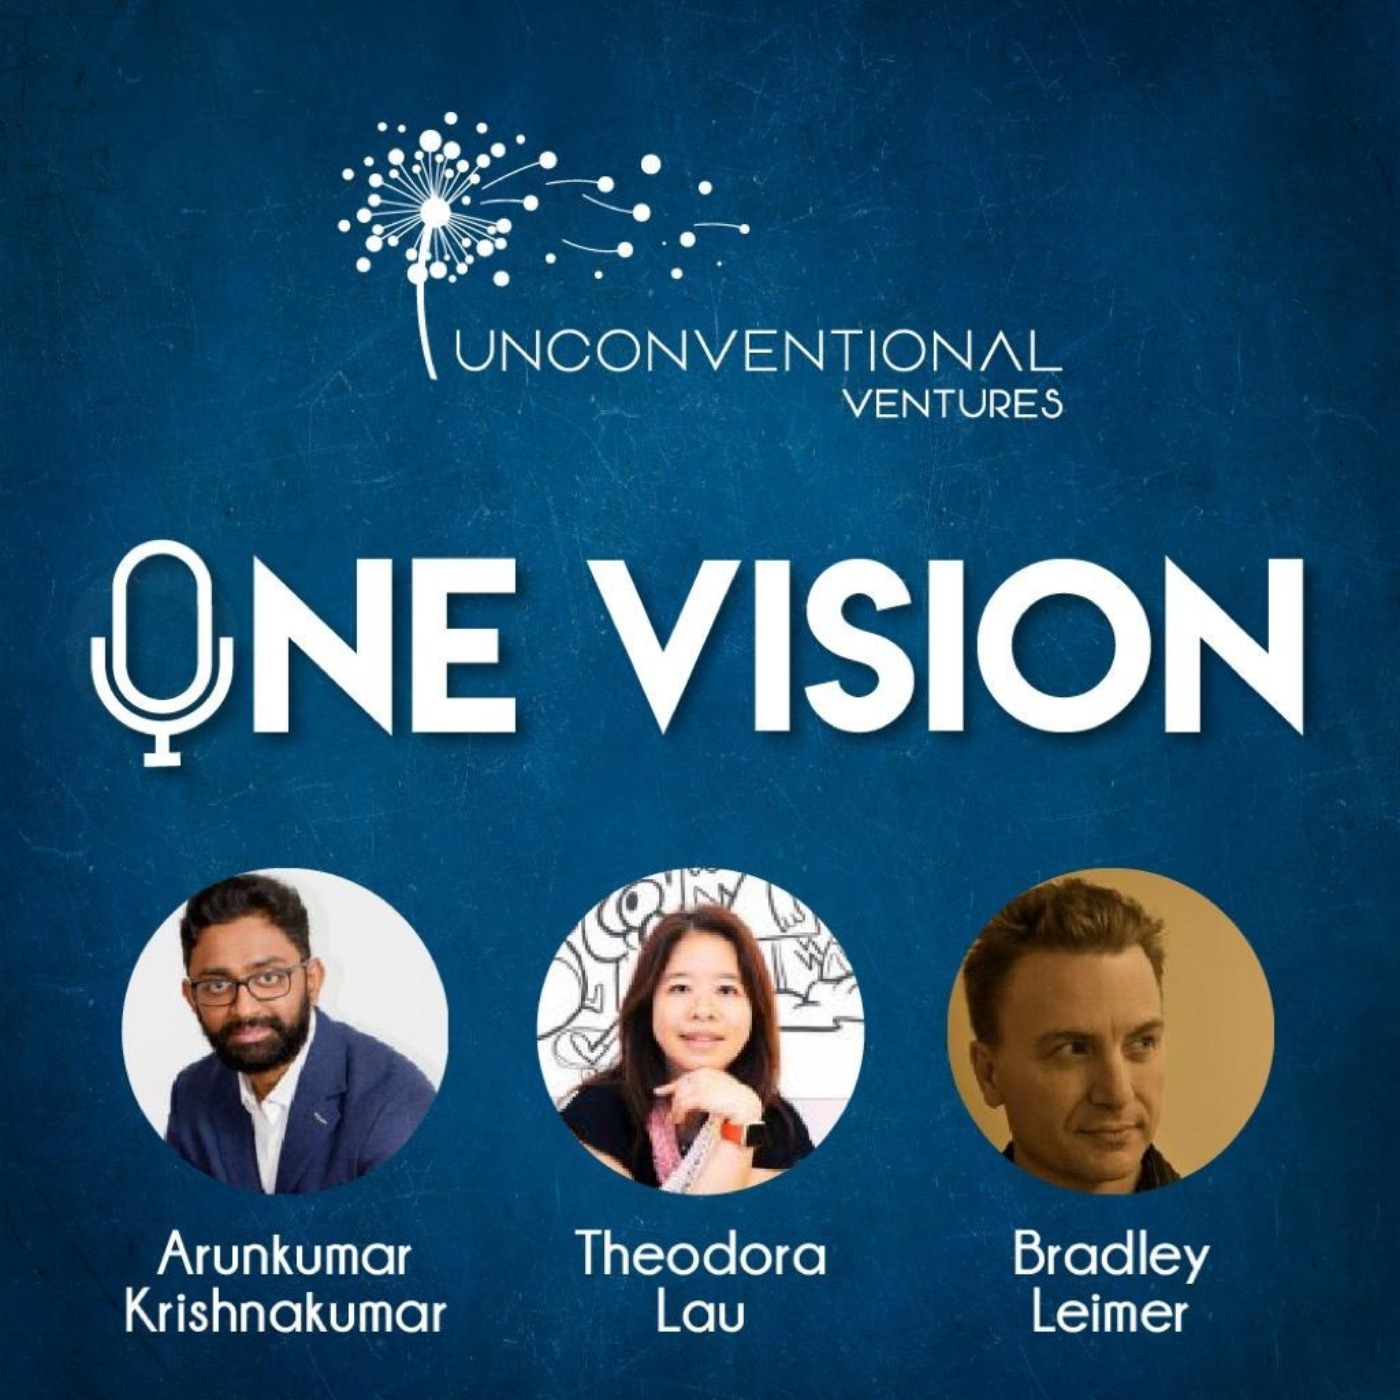 One Vision podcast show image